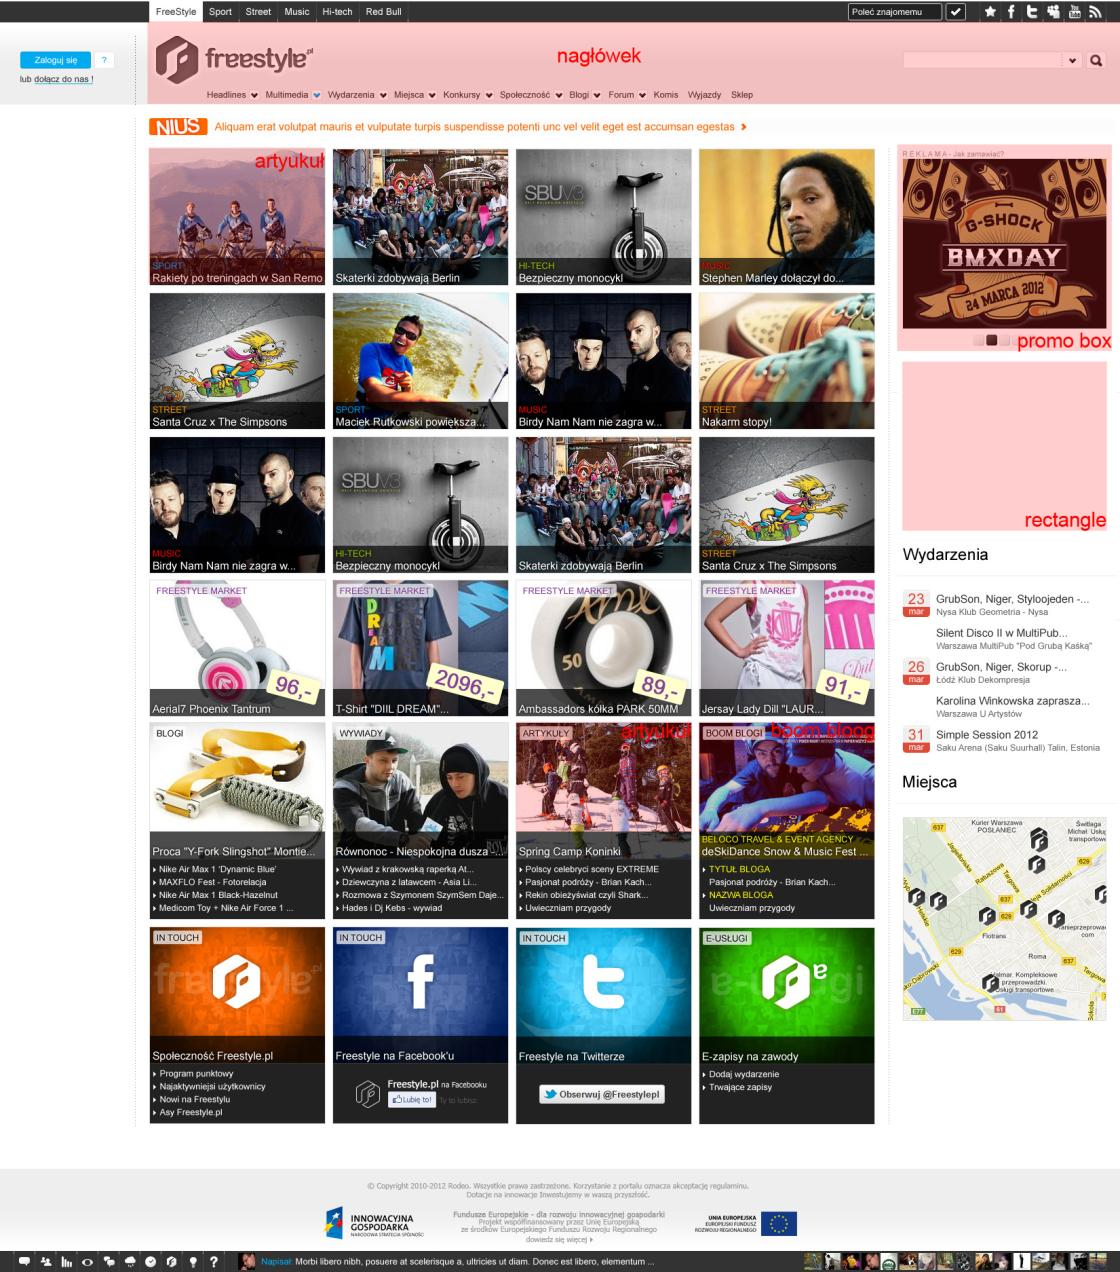 Rozmieszczenie form reklamowych Formy reklamowe Billboard 750x100 px/double Billboard 750x200 px Medium Rectangle 300x250 px Promo Box 325x310 px Animowany (gif) lub statyczny (jpg, gif, png) Box